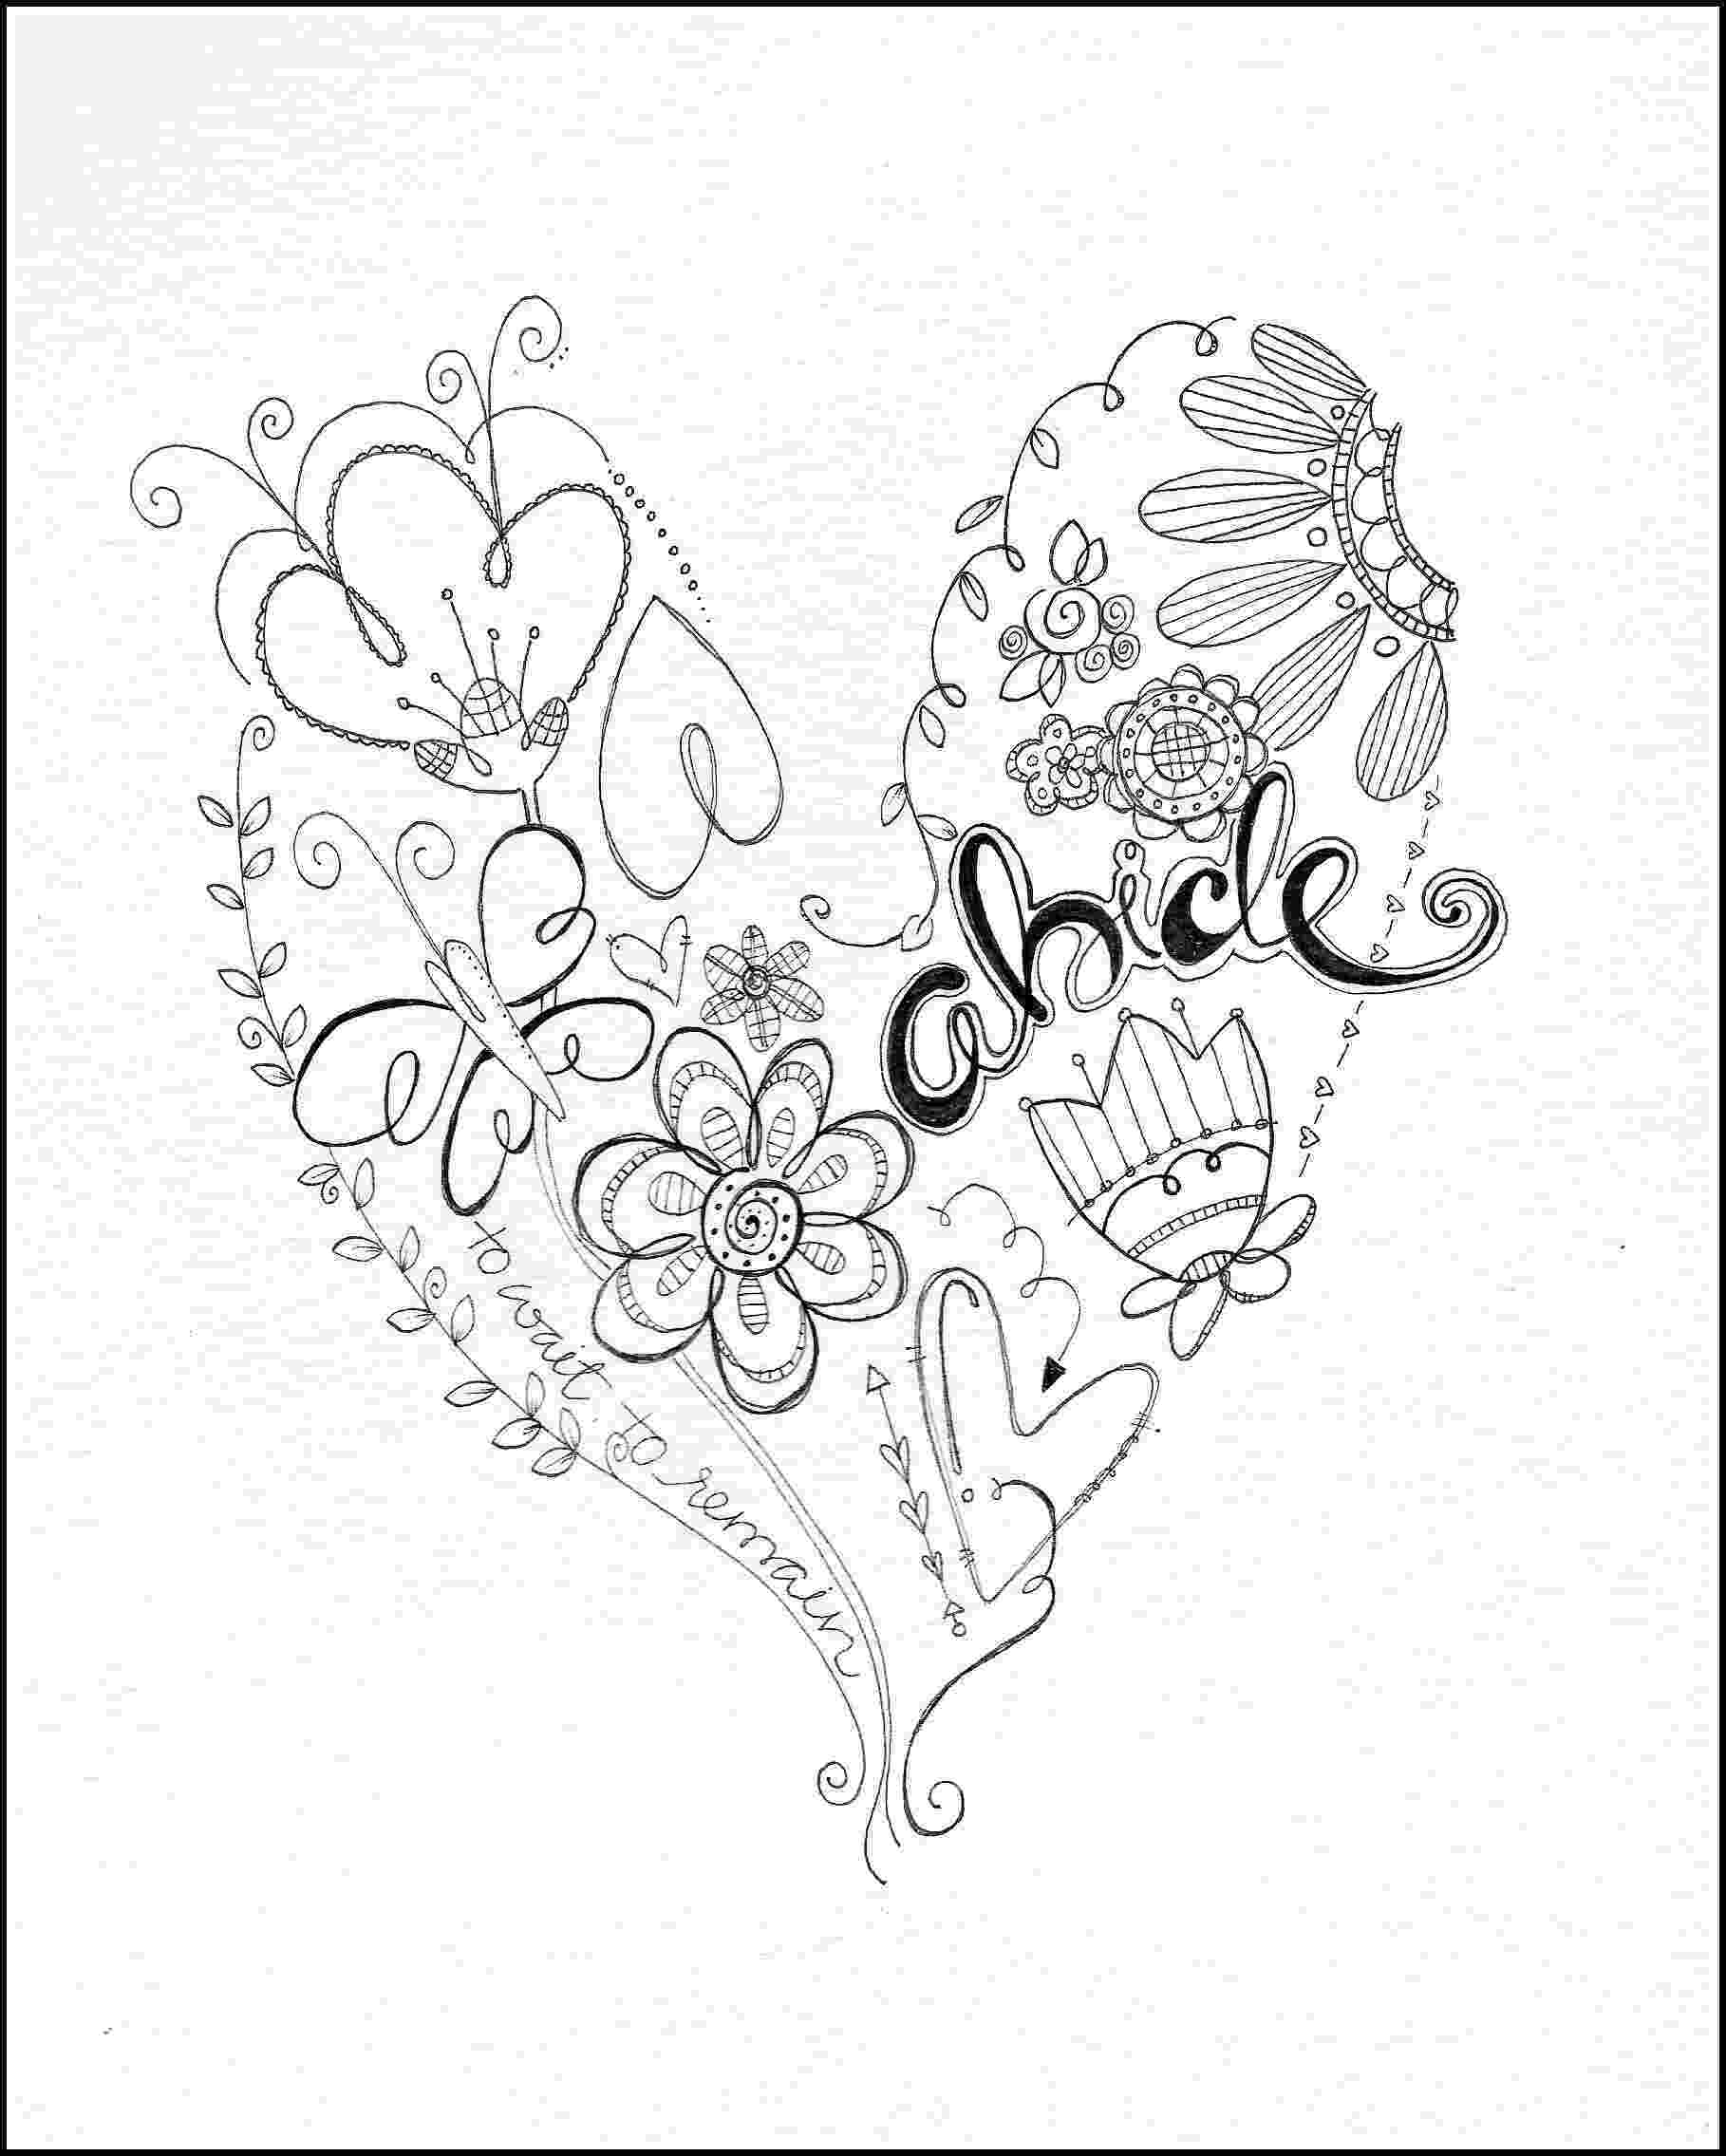 christian coloring pages for adults adult colouring book with a christian theme let39s talk life coloring pages adults christian for